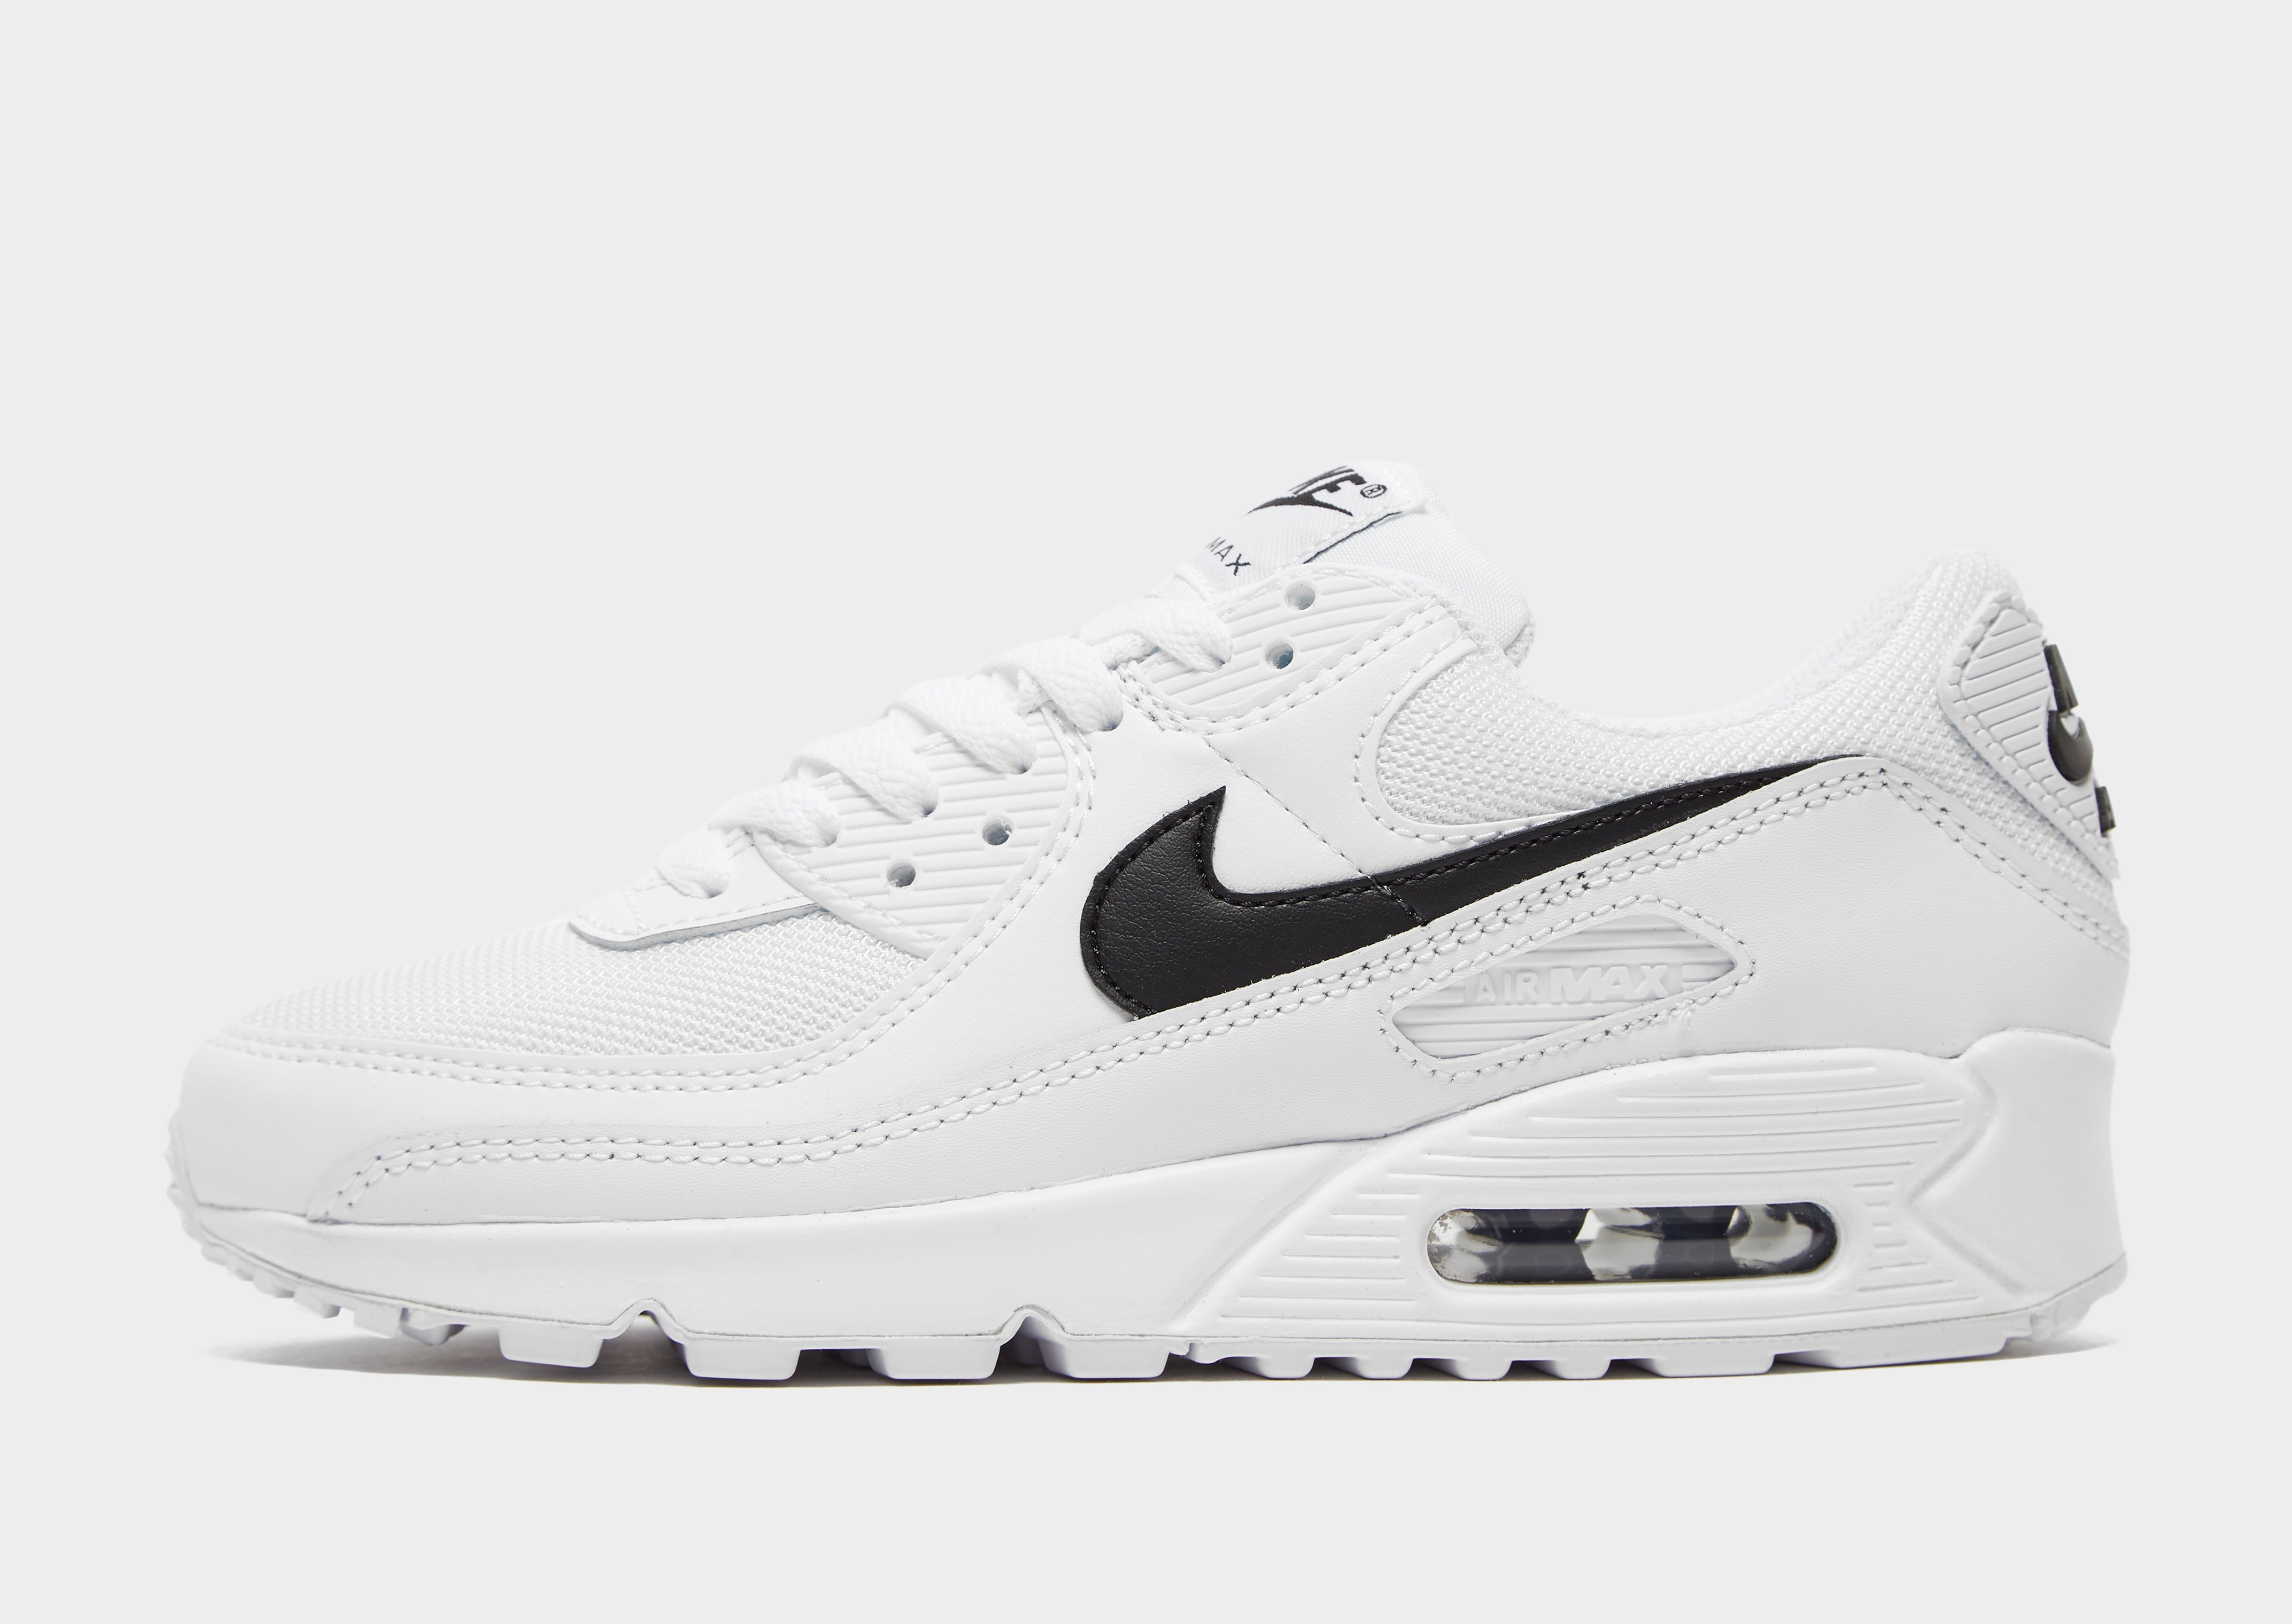 nike max air 90 dam nz|Free delivery!